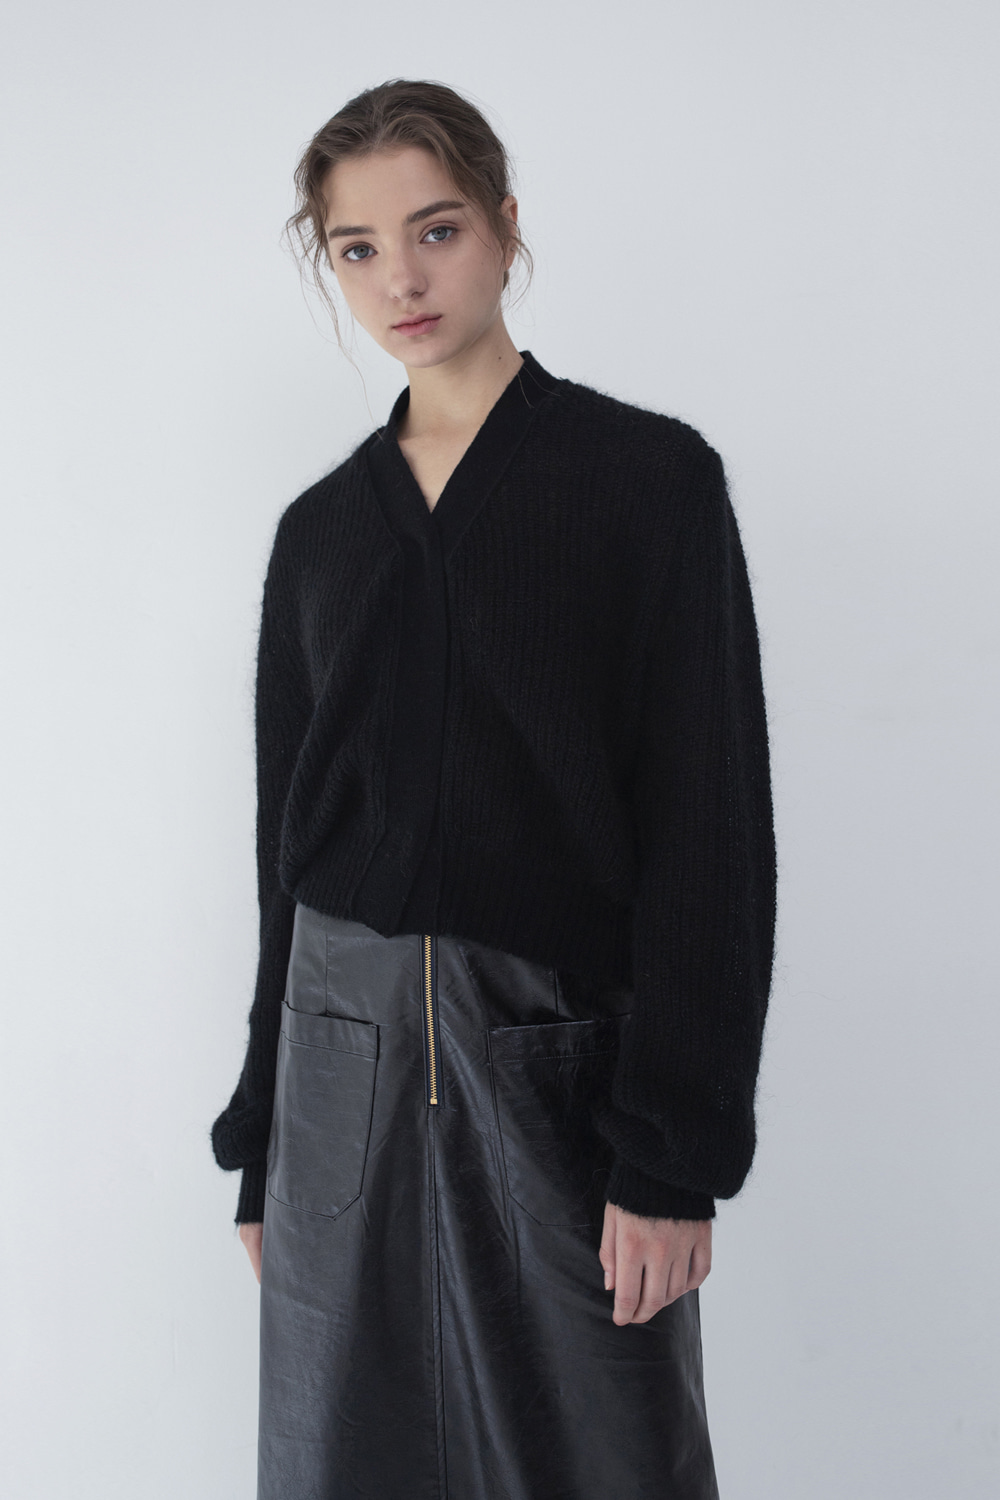 Cardigan 5.0 Kid T Nocturnal Black